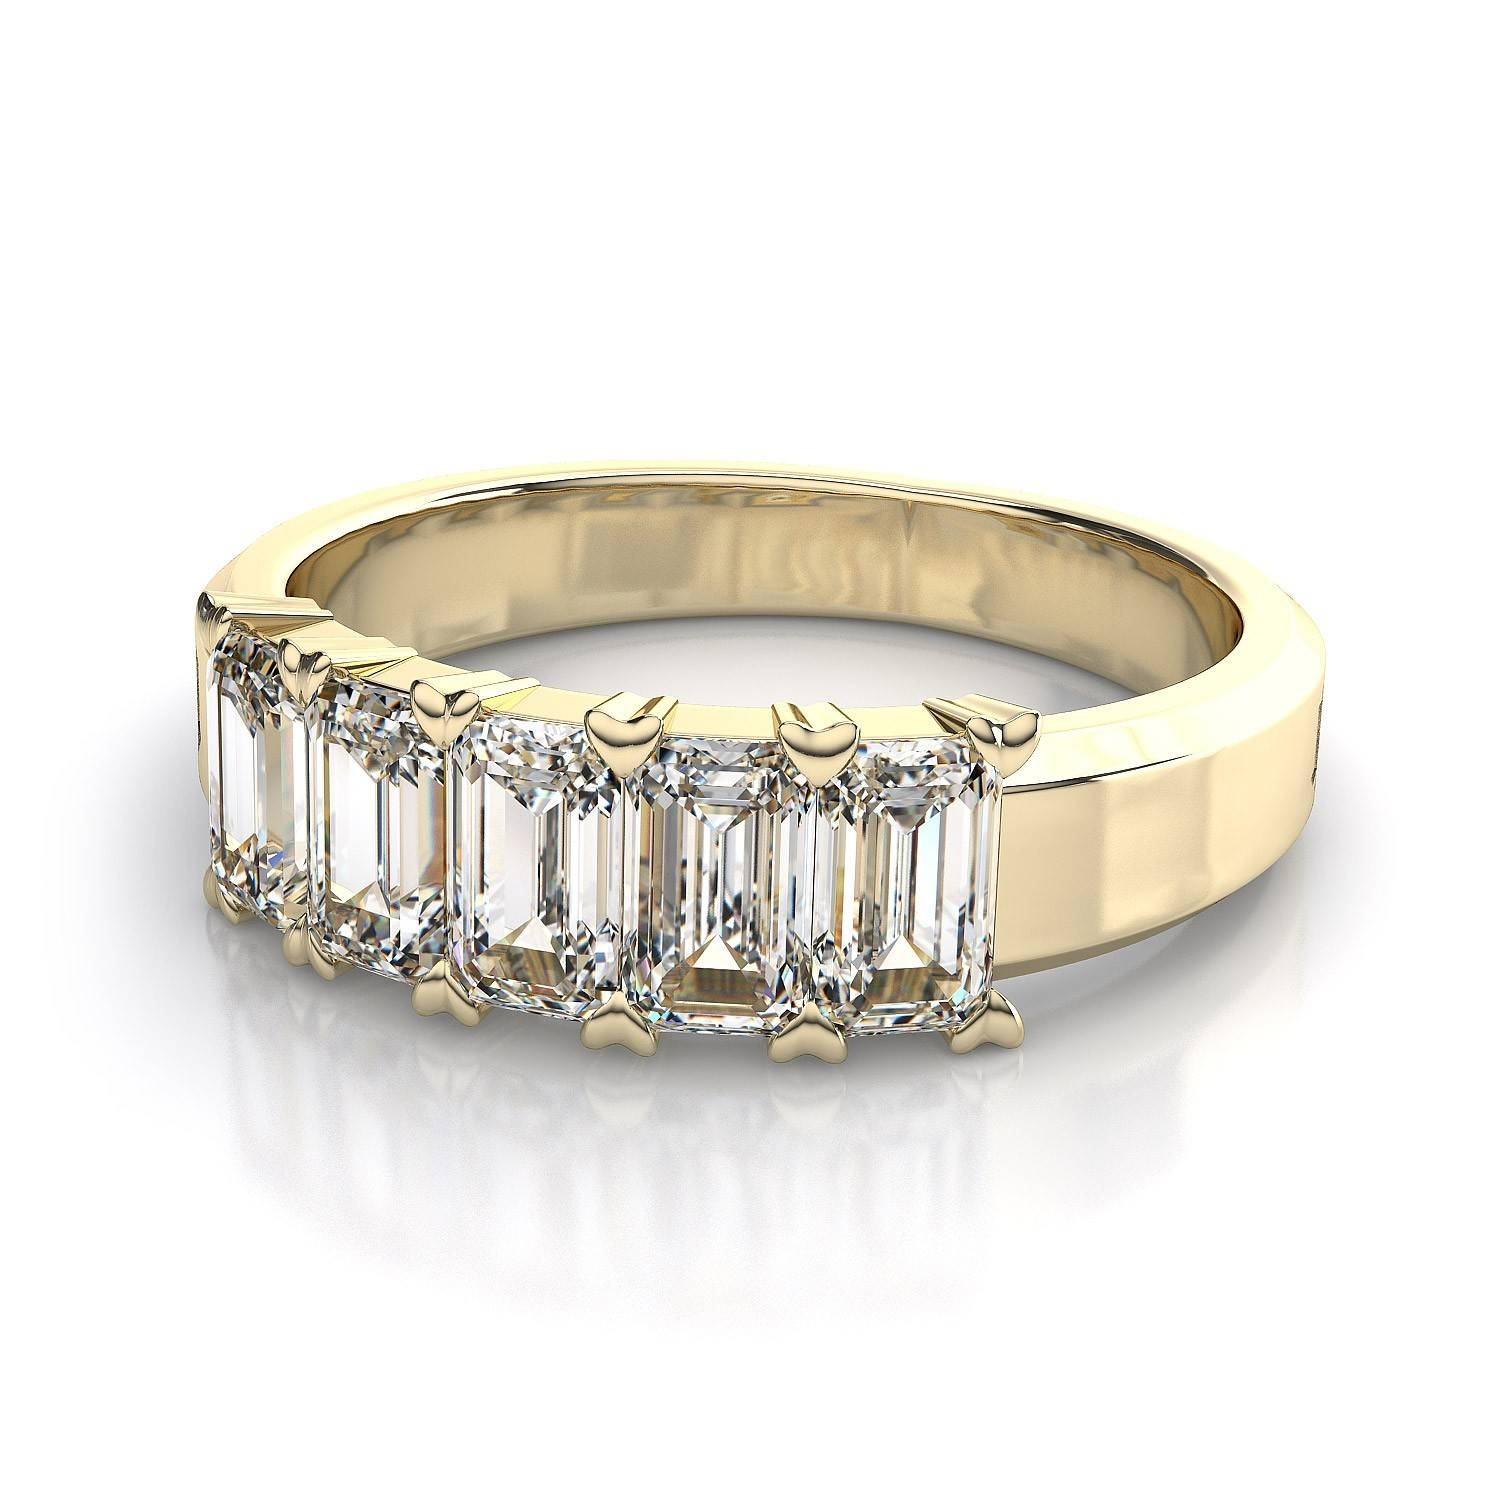 Wedding Rings : Art Deco Anniversary Band 3 Carat Solitaire Throughout Latest 3 Carat Diamond Anniversary Rings (View 25 of 25)